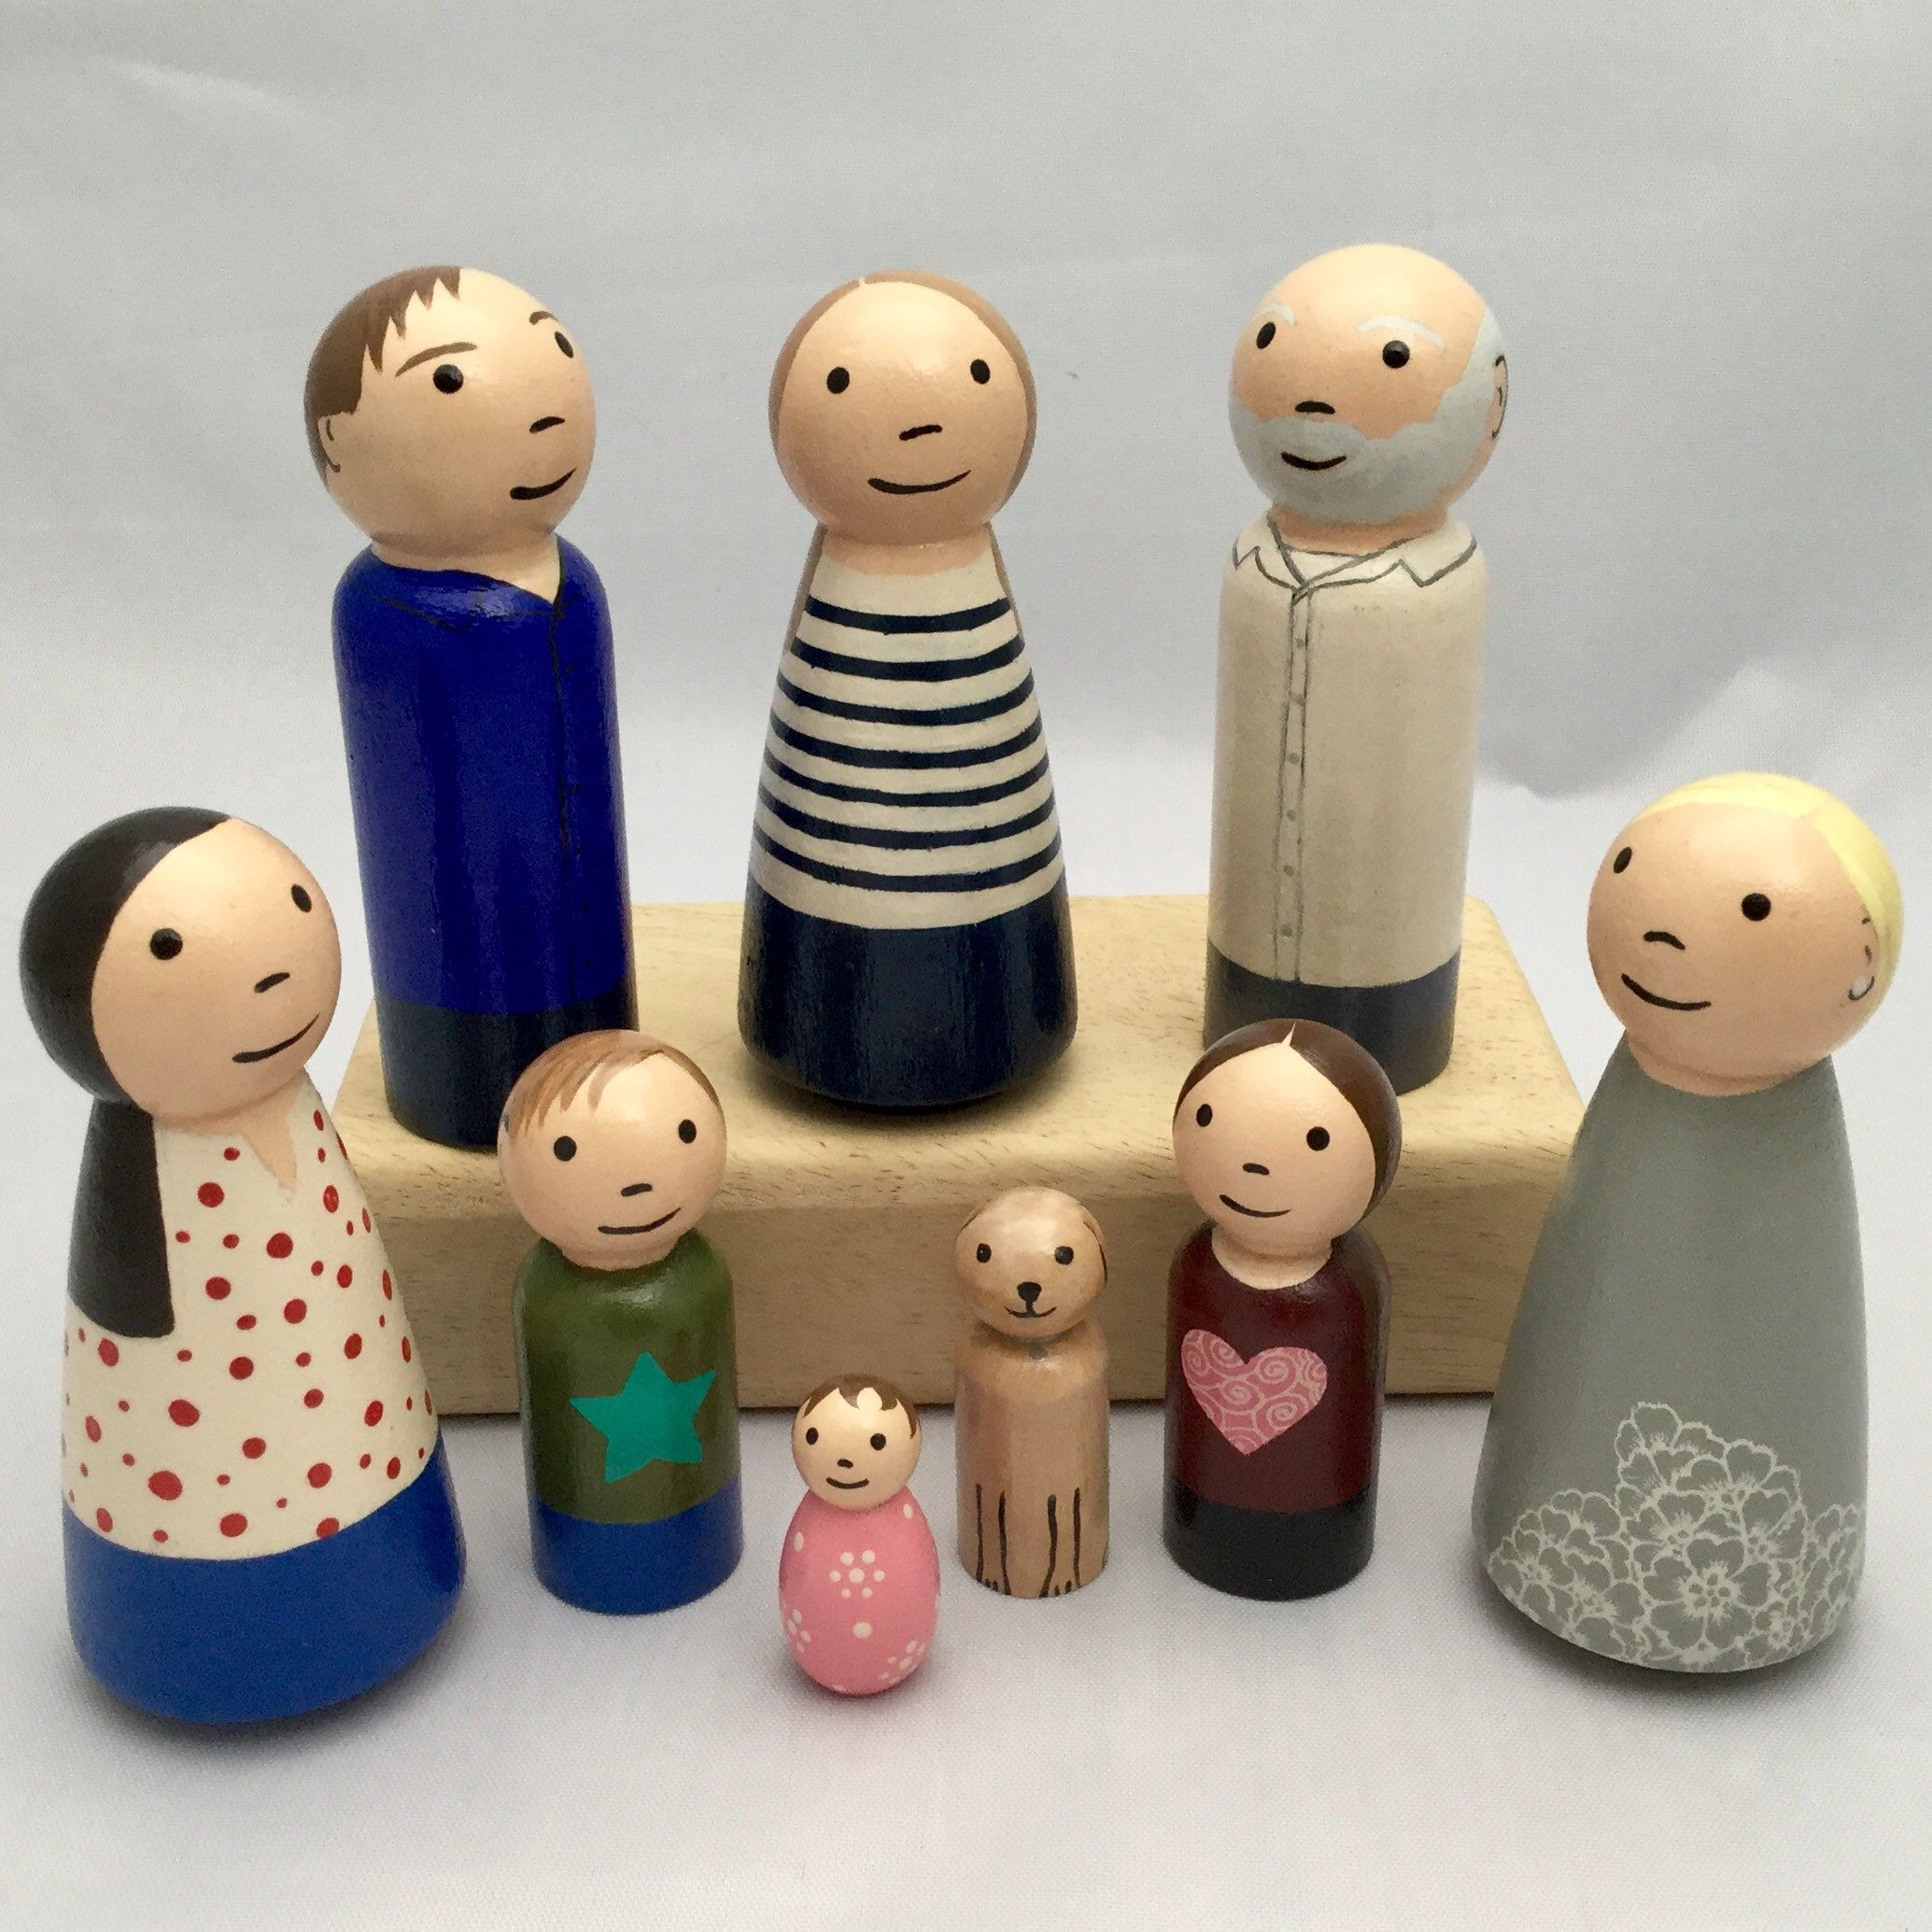 Wooden peg Doll Family of 8 Montessori